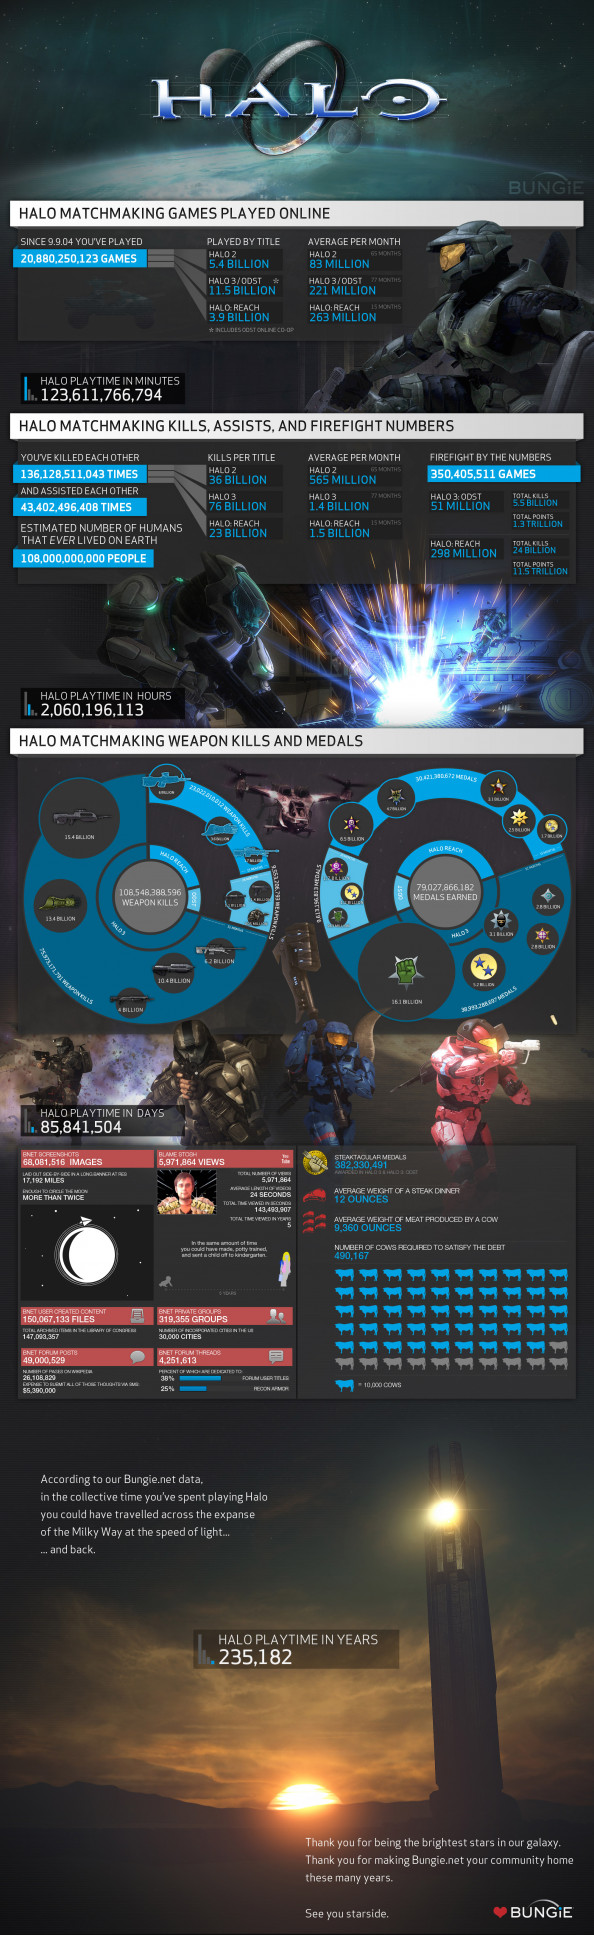 Halo Total Stats Infographic